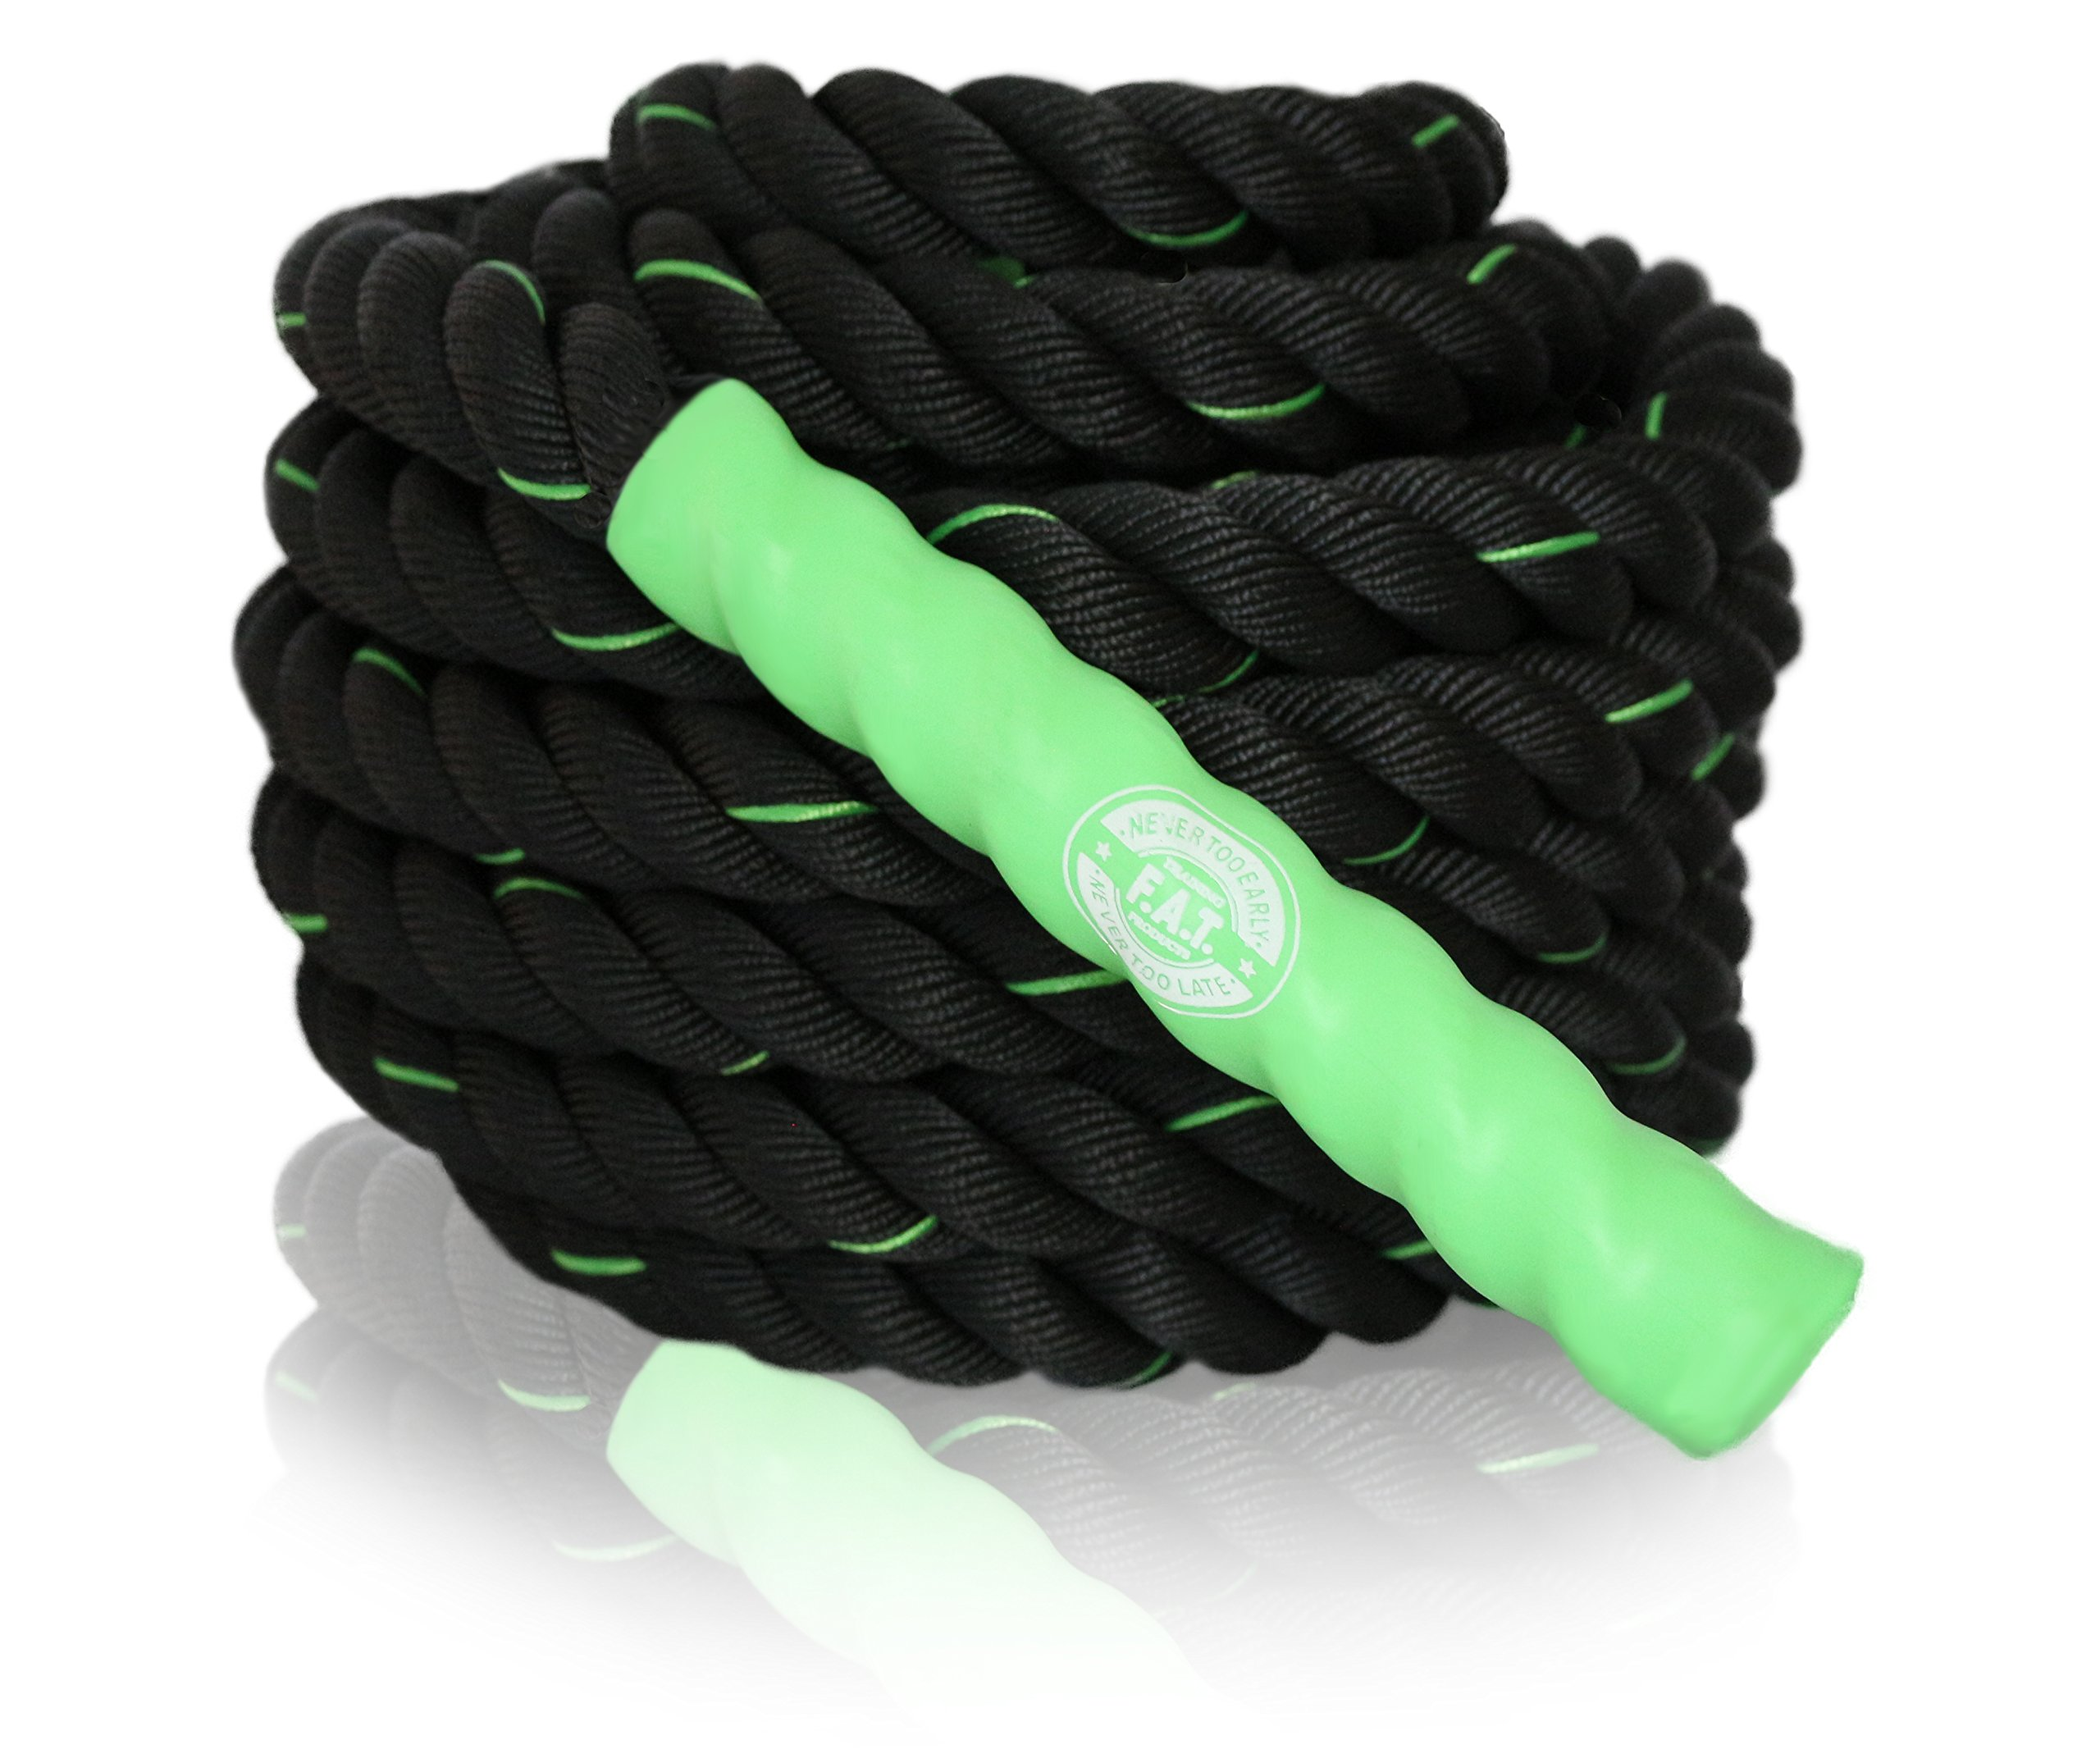 Battle Ropes Fitness | Cardio Exercise Rope Training | Best Gym Workout for Home - 40' feet x 1.5'' inch - Green